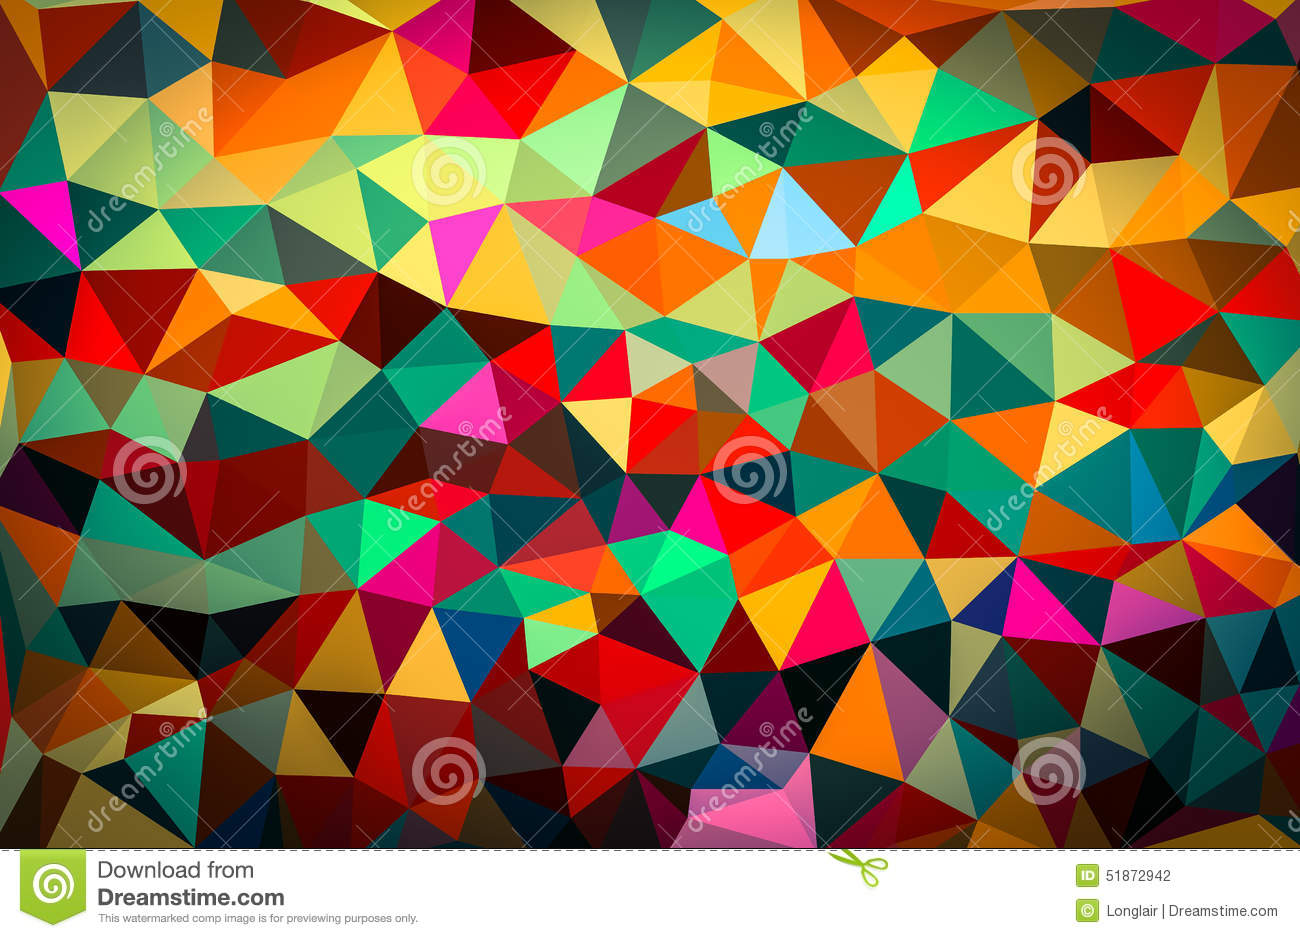 colourful abstract geometric background with triangular polygons